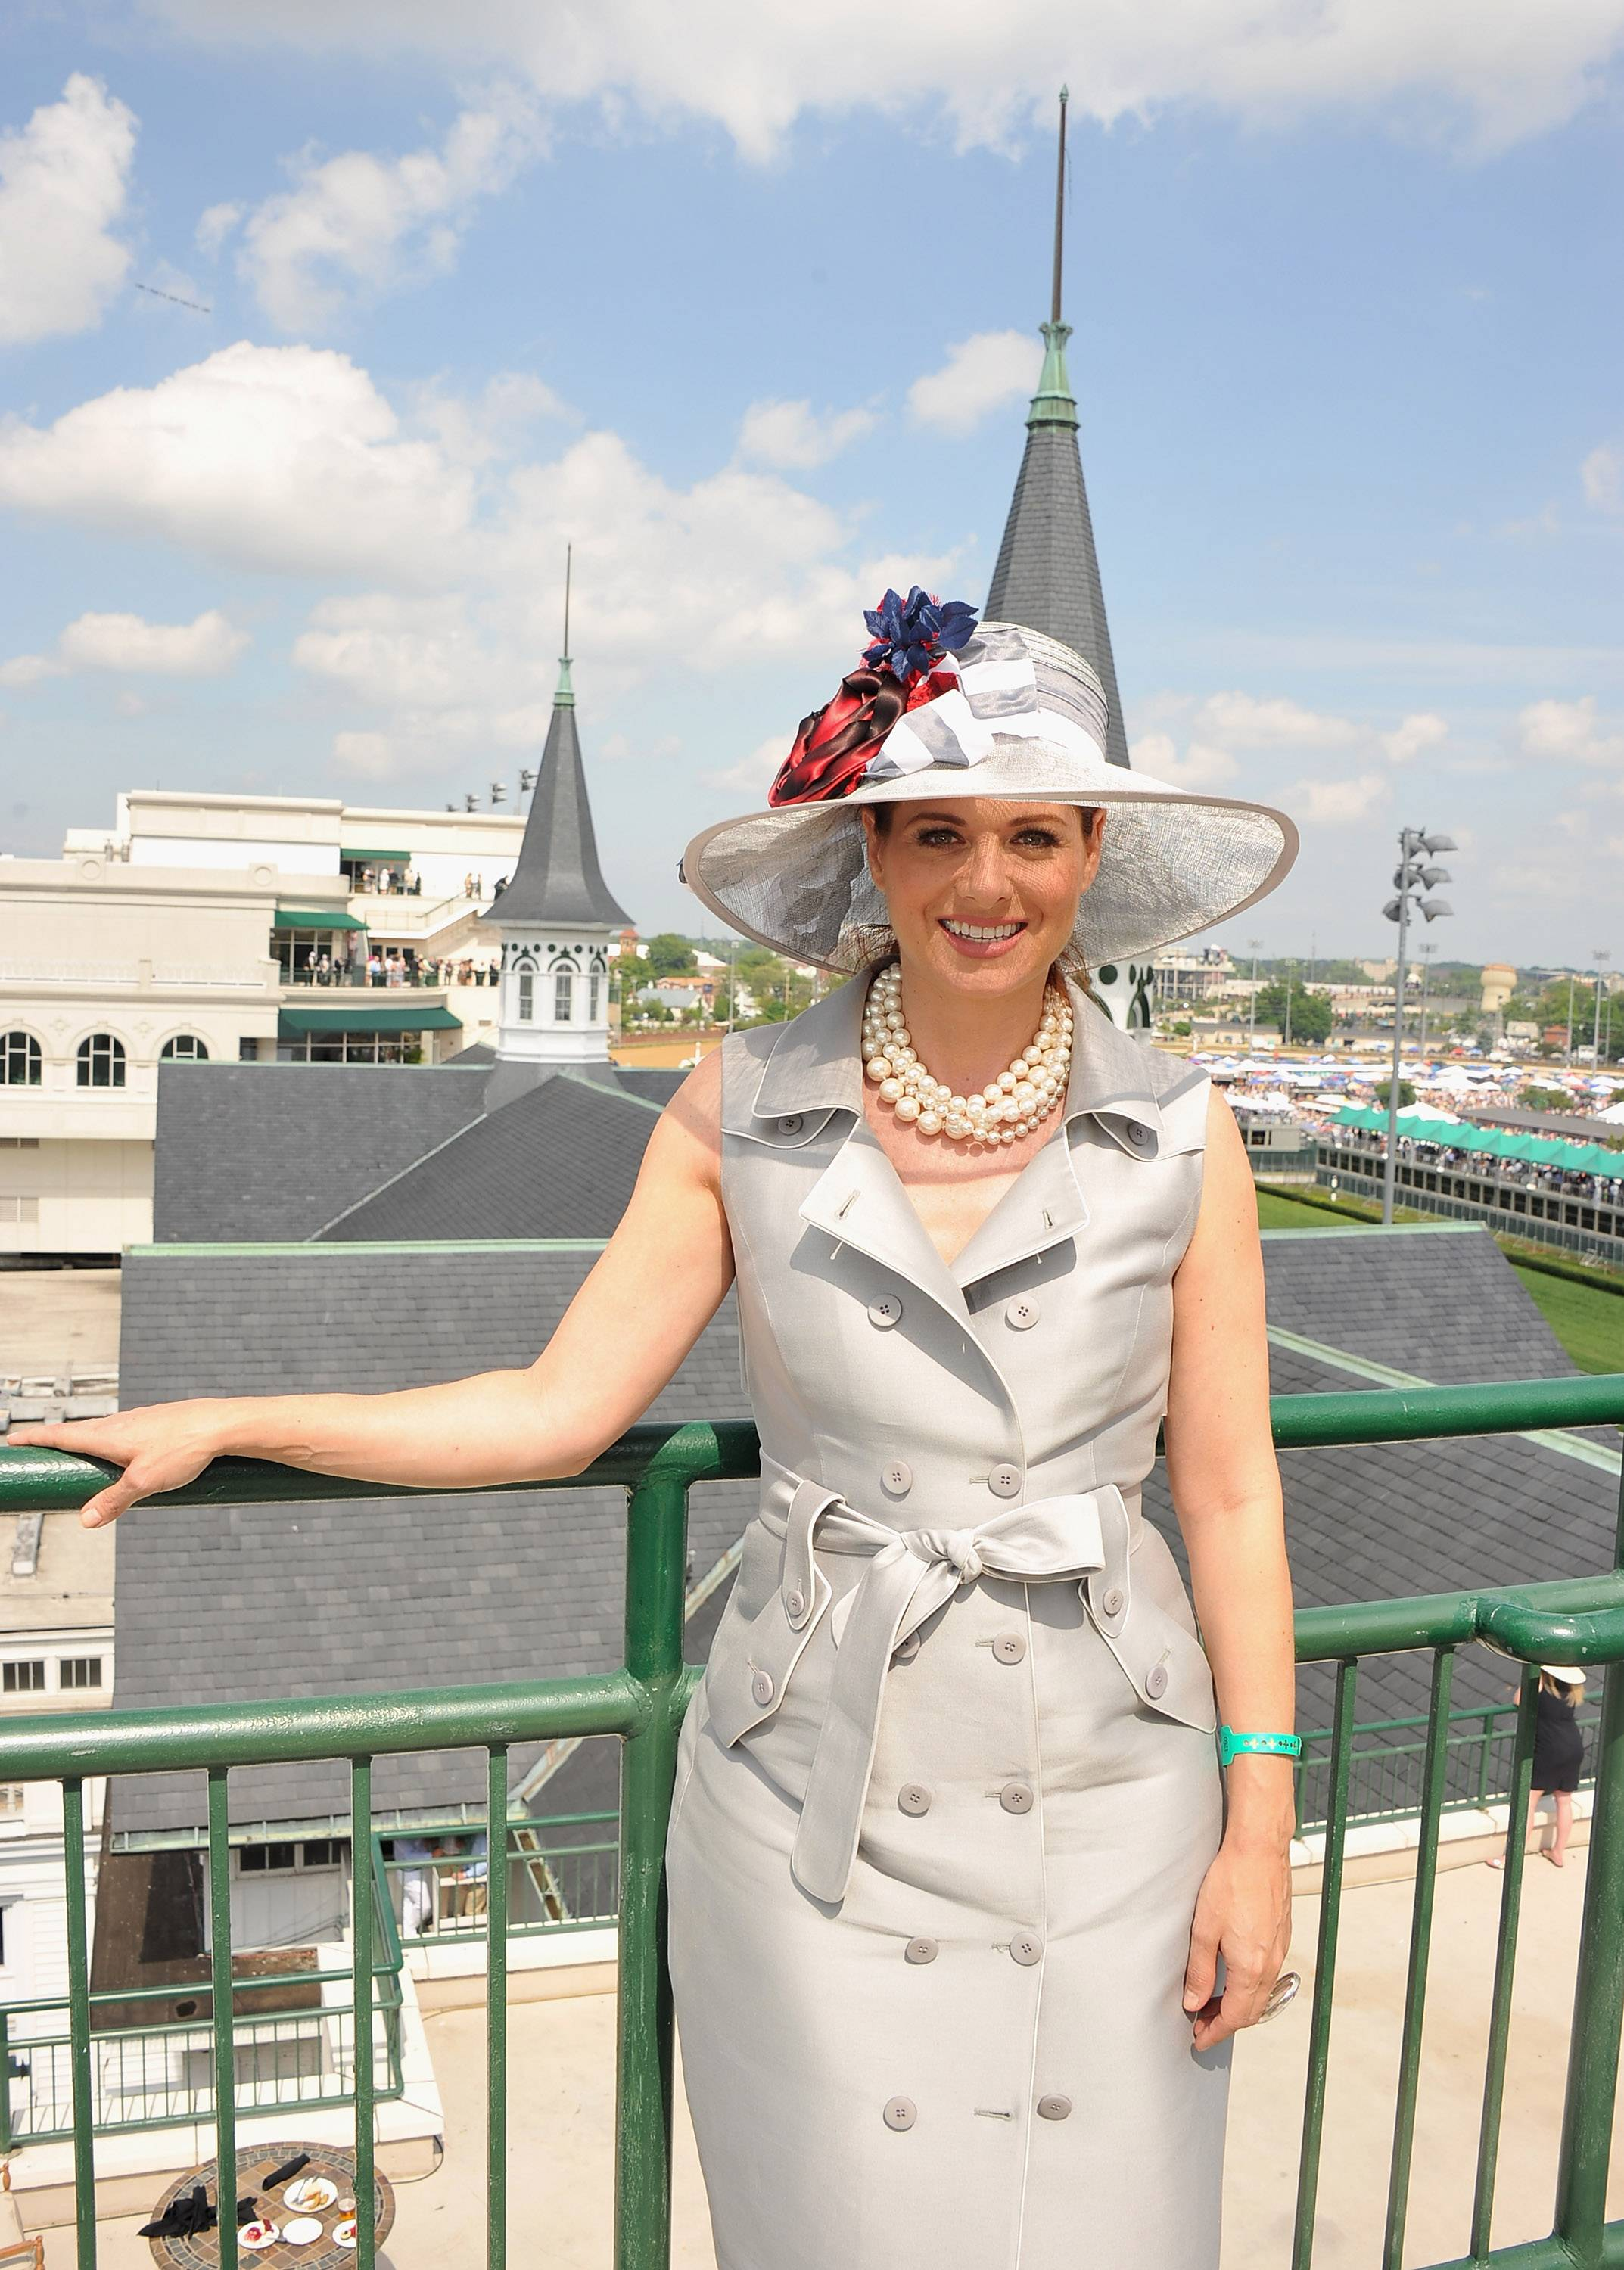 Debra Messing wears GREY GOOSE Cherry Noir Vodka Inspired Hat at the 2012 Kentucky Derby5